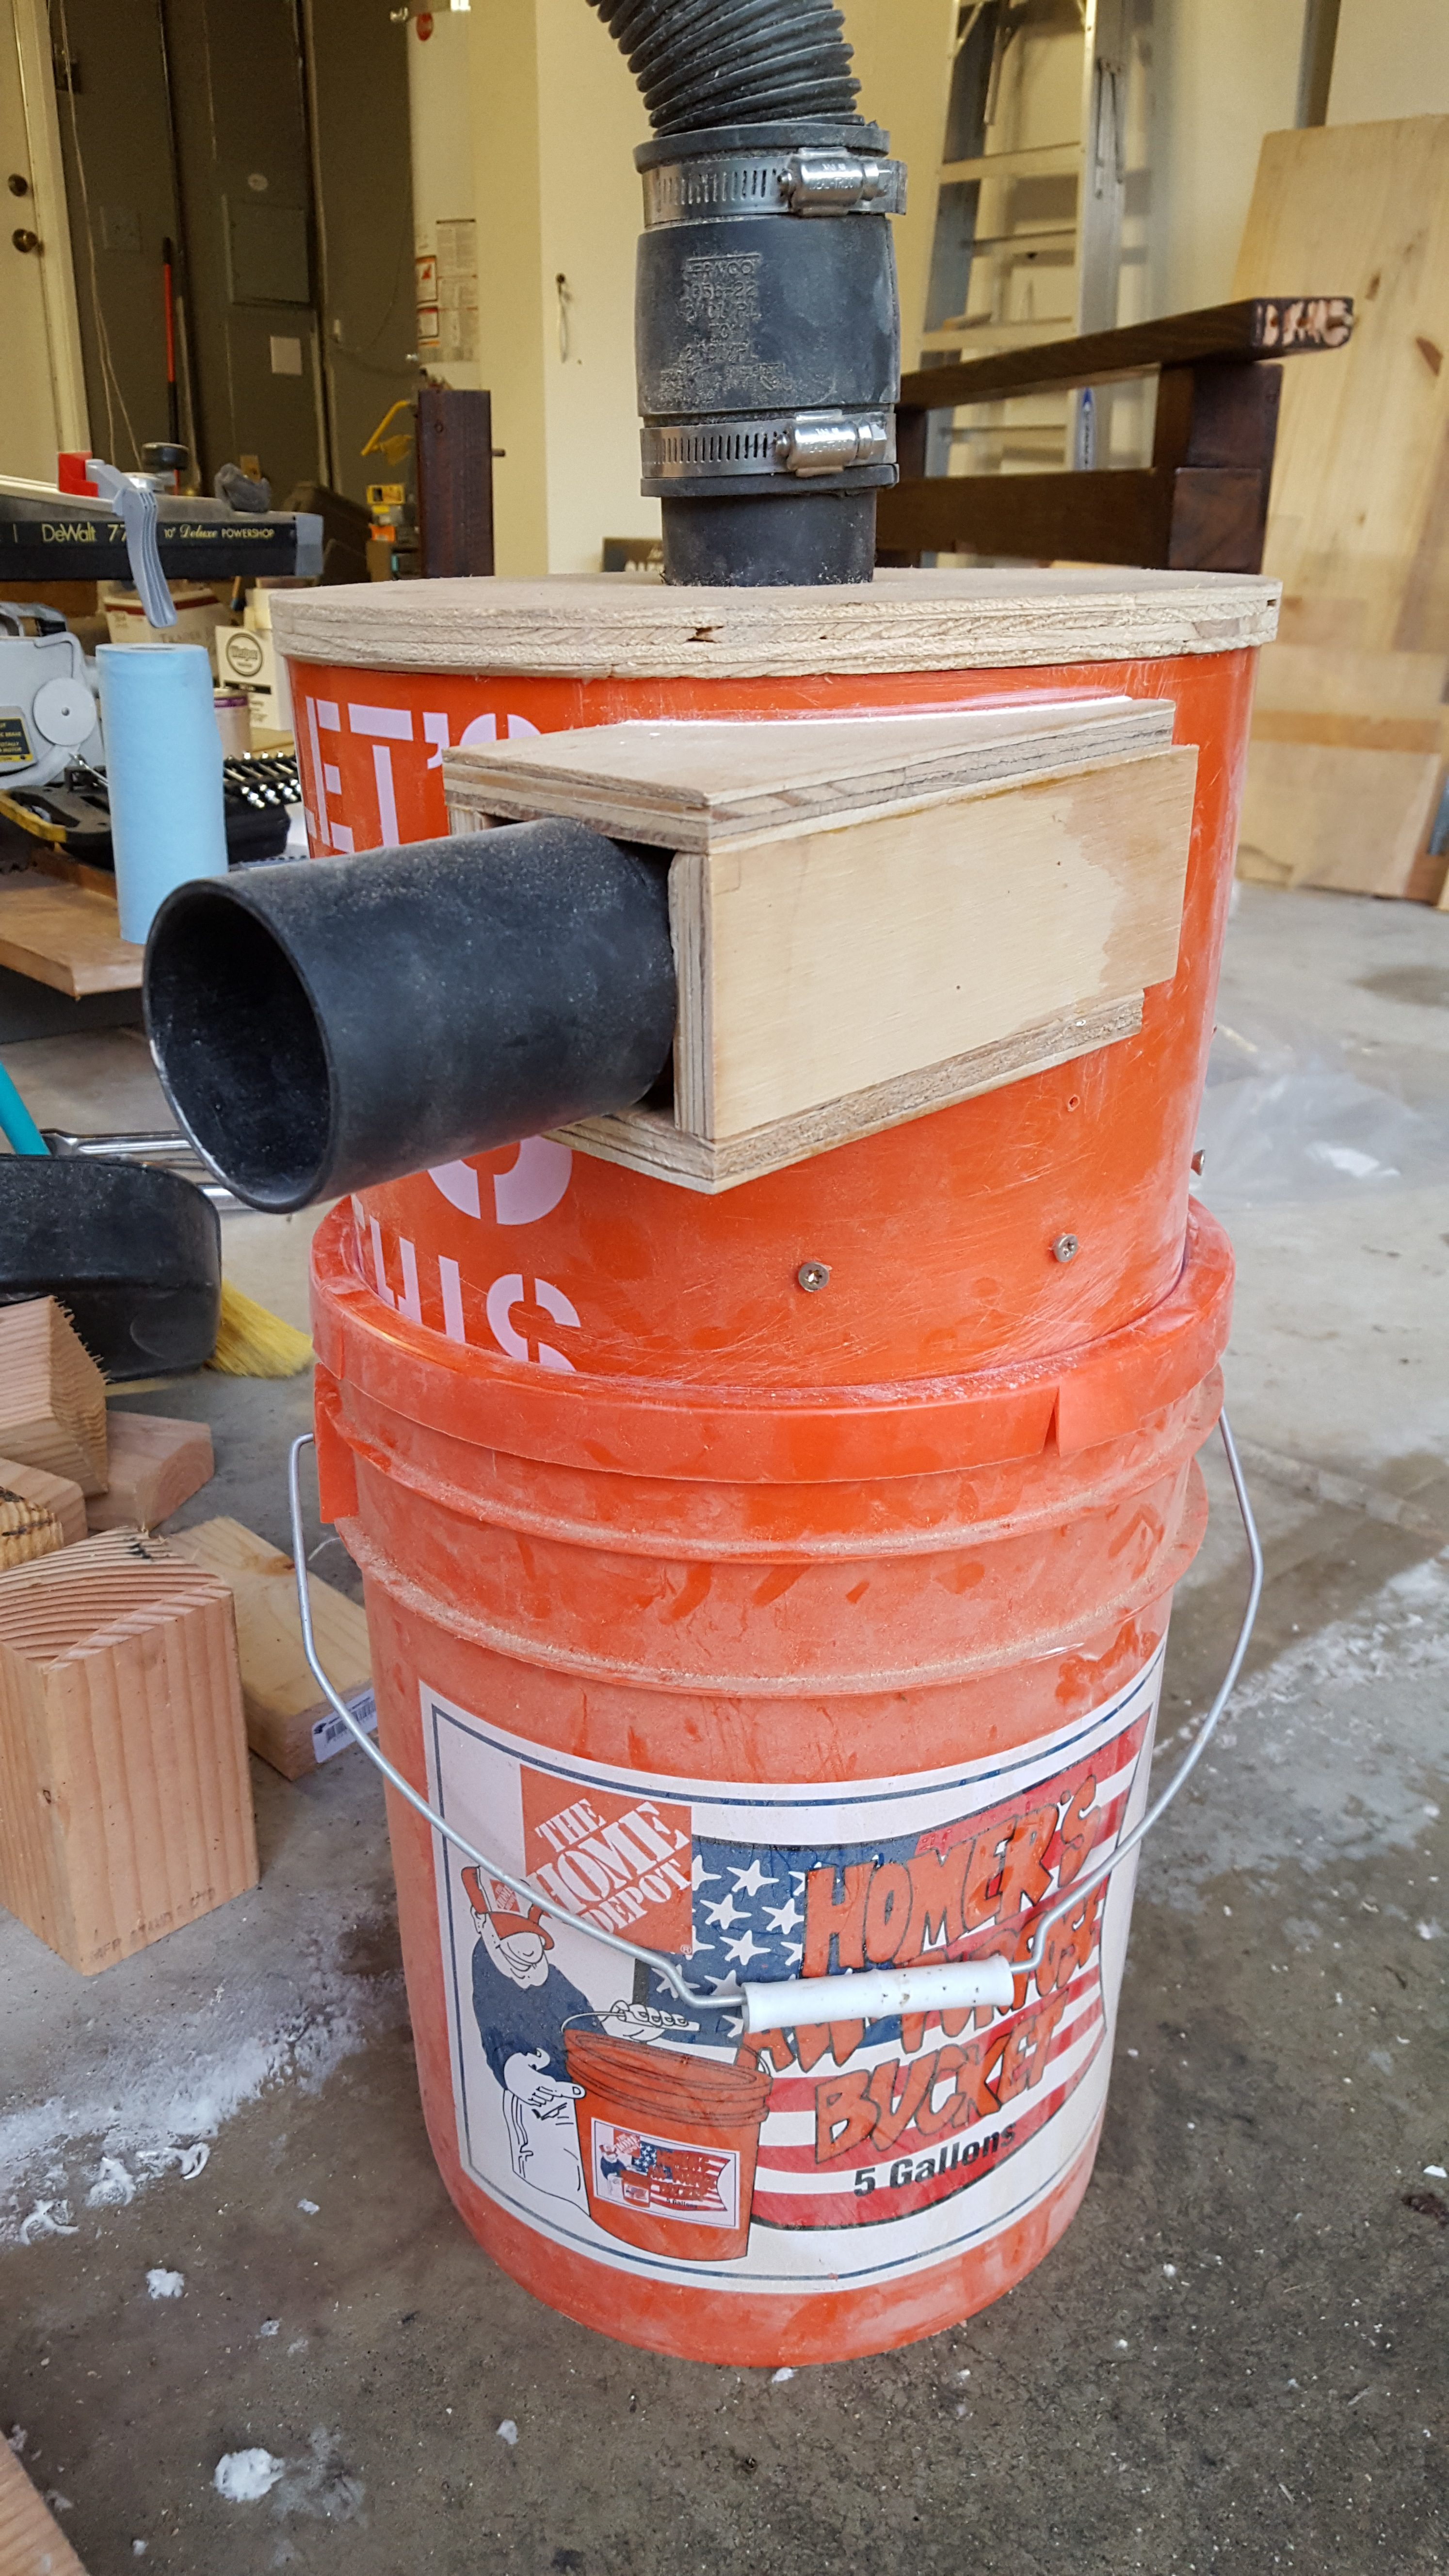 5 Gallon Bucket Thien Baffle Dust Collector Next Project